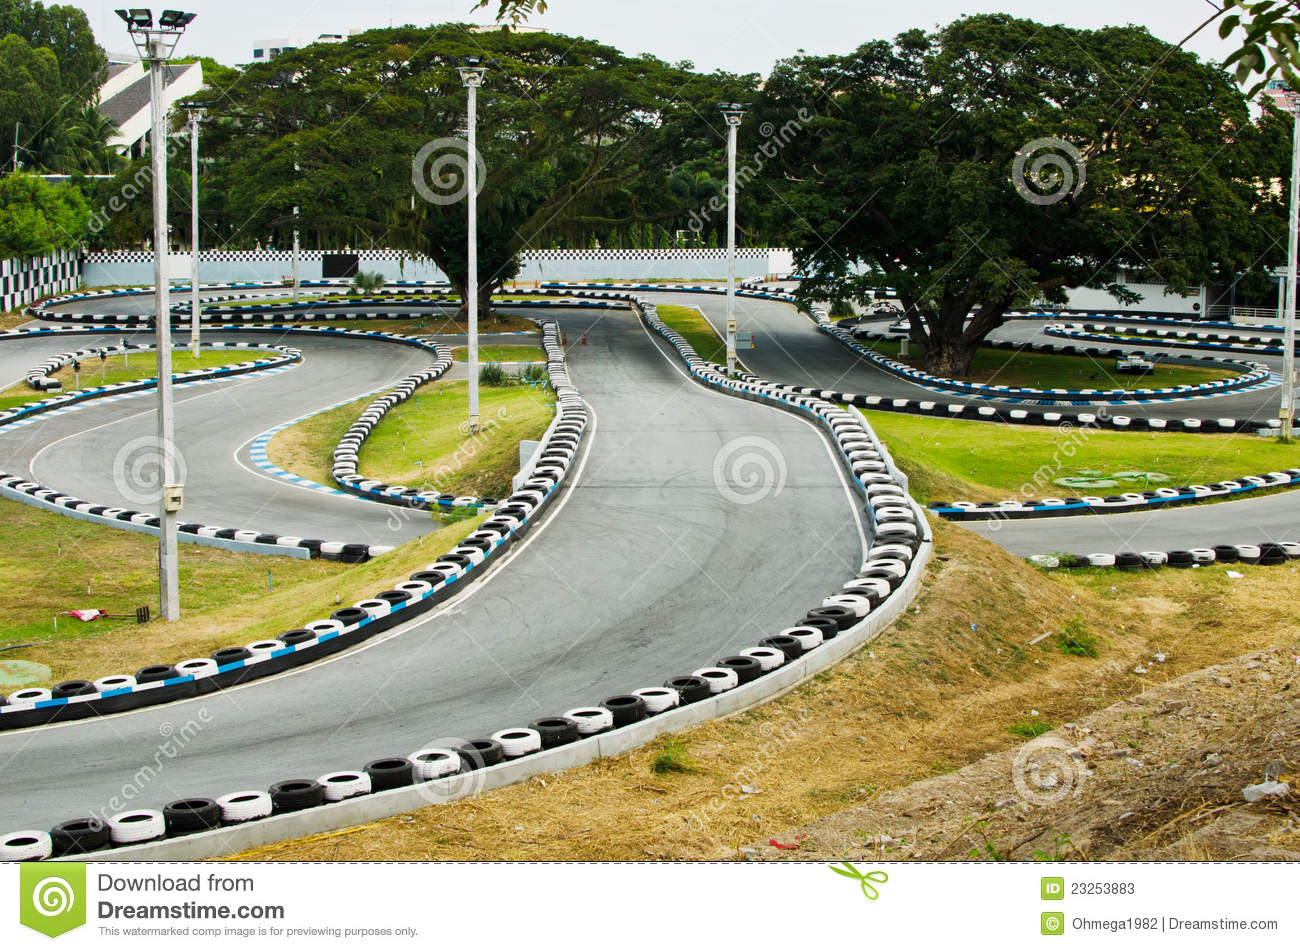 Go Kart Track Clipart Clipart Suggest